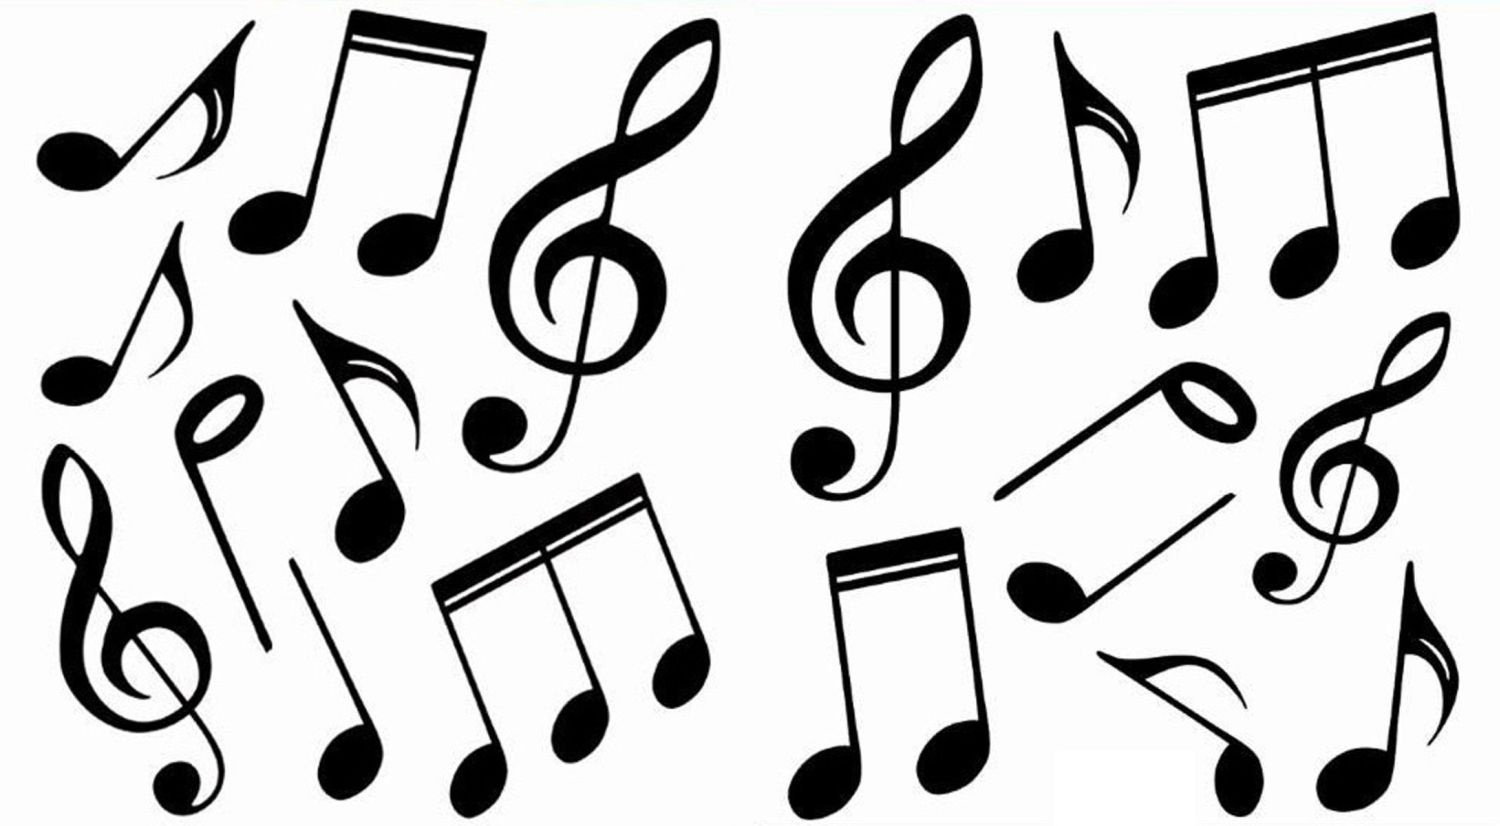 Free Pictures Of Music Notes And Symbols, Download Free Clip Art - Free Printable Pictures Of Music Notes